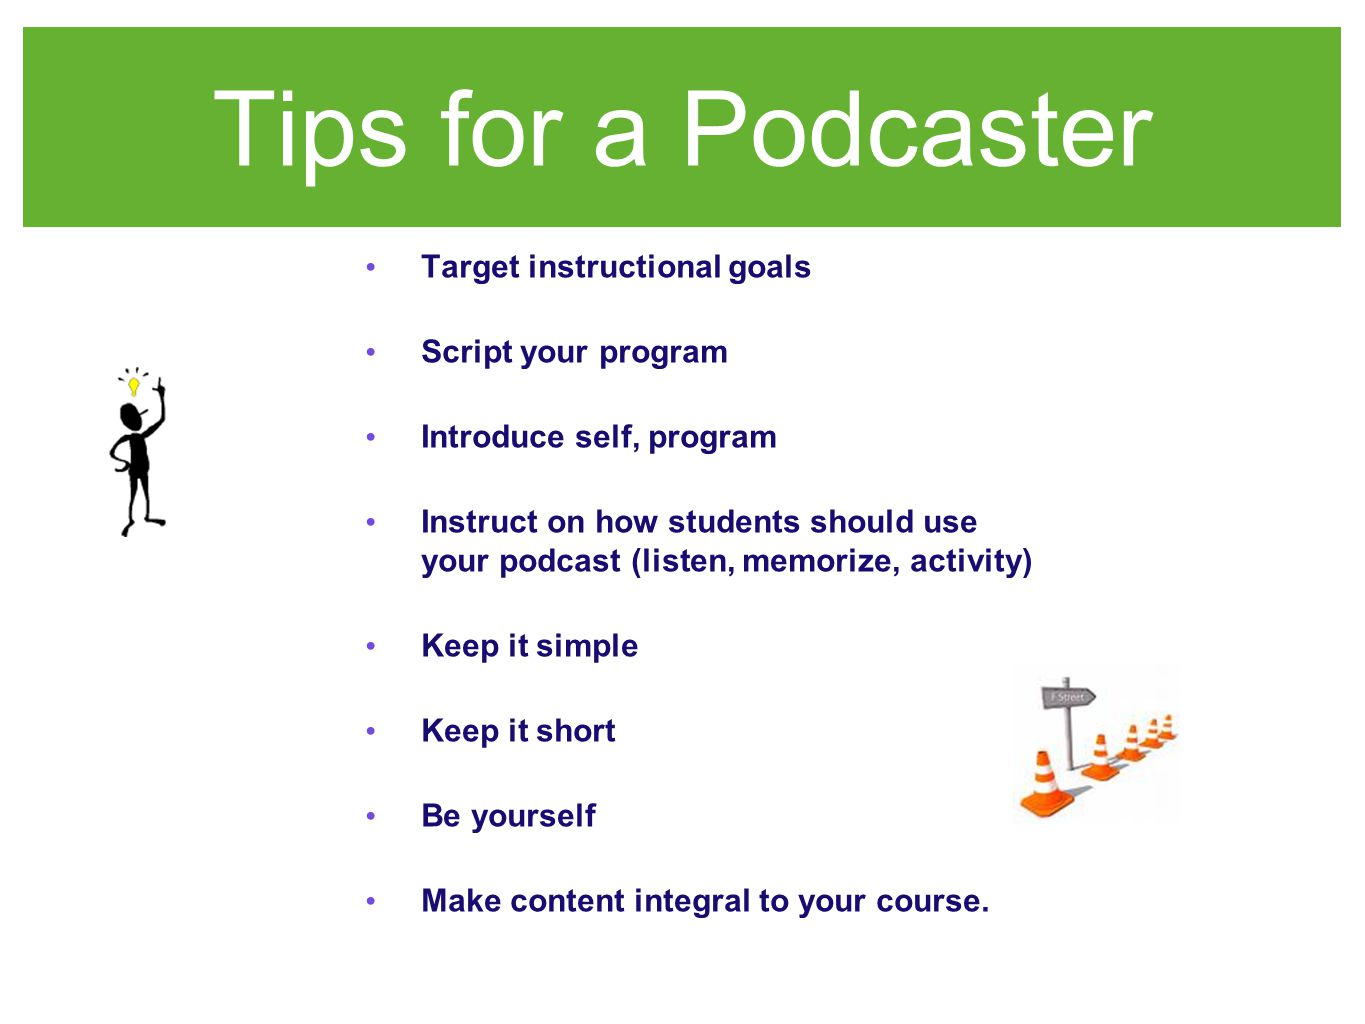 Tips for a Podcaster Target instructional goals Script your program Introduce self, program Instruct on how students should use your podcast (listen, memorize, activity) Keep it simple Keep it short Be yourself Make content integral to your course.